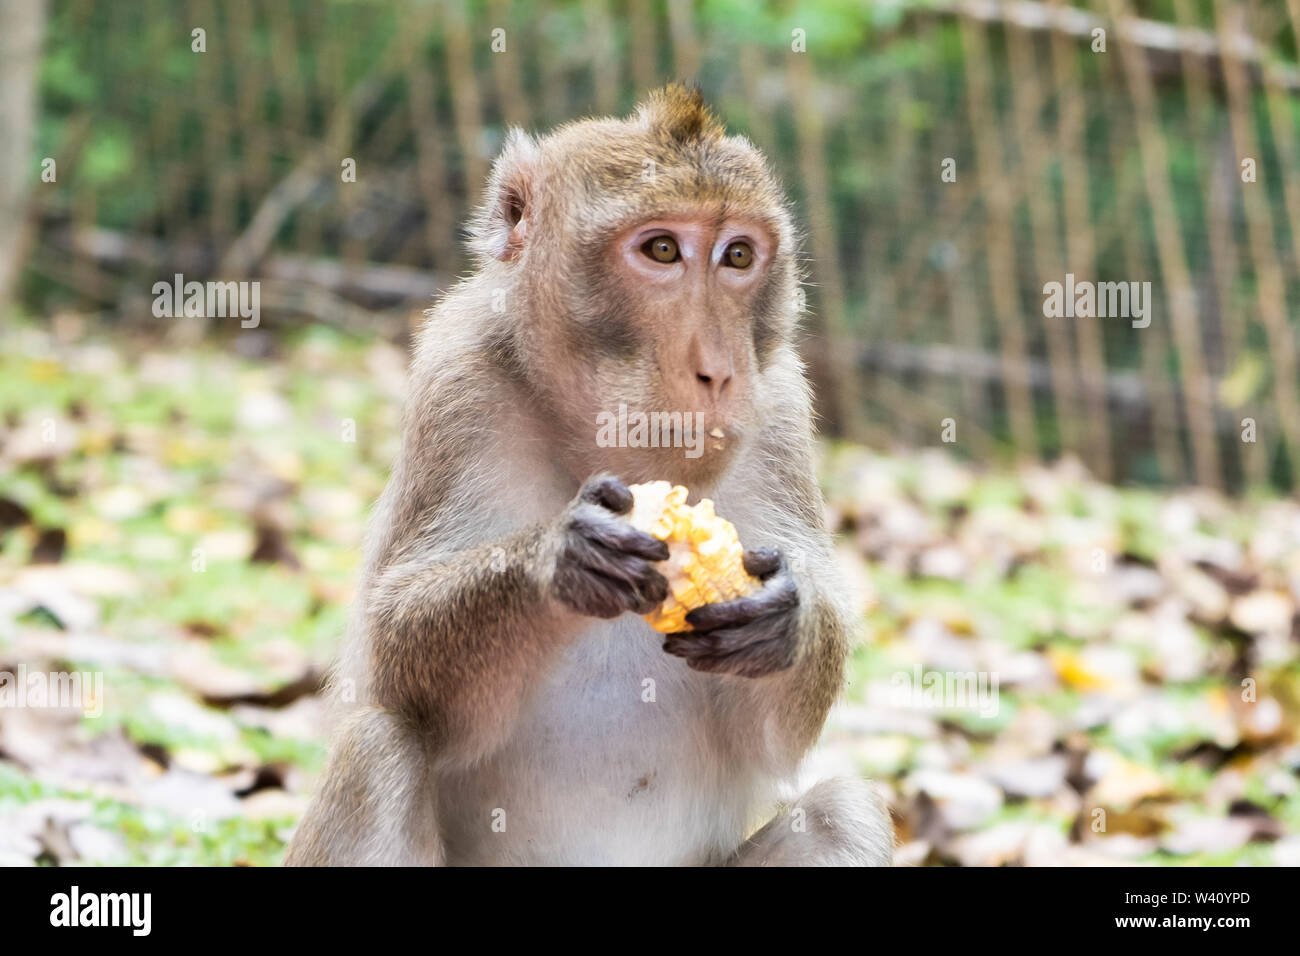 Monkey eating corn. The concept of animals in the zoo. Pattaya Zoo, Thailand - Stock Image